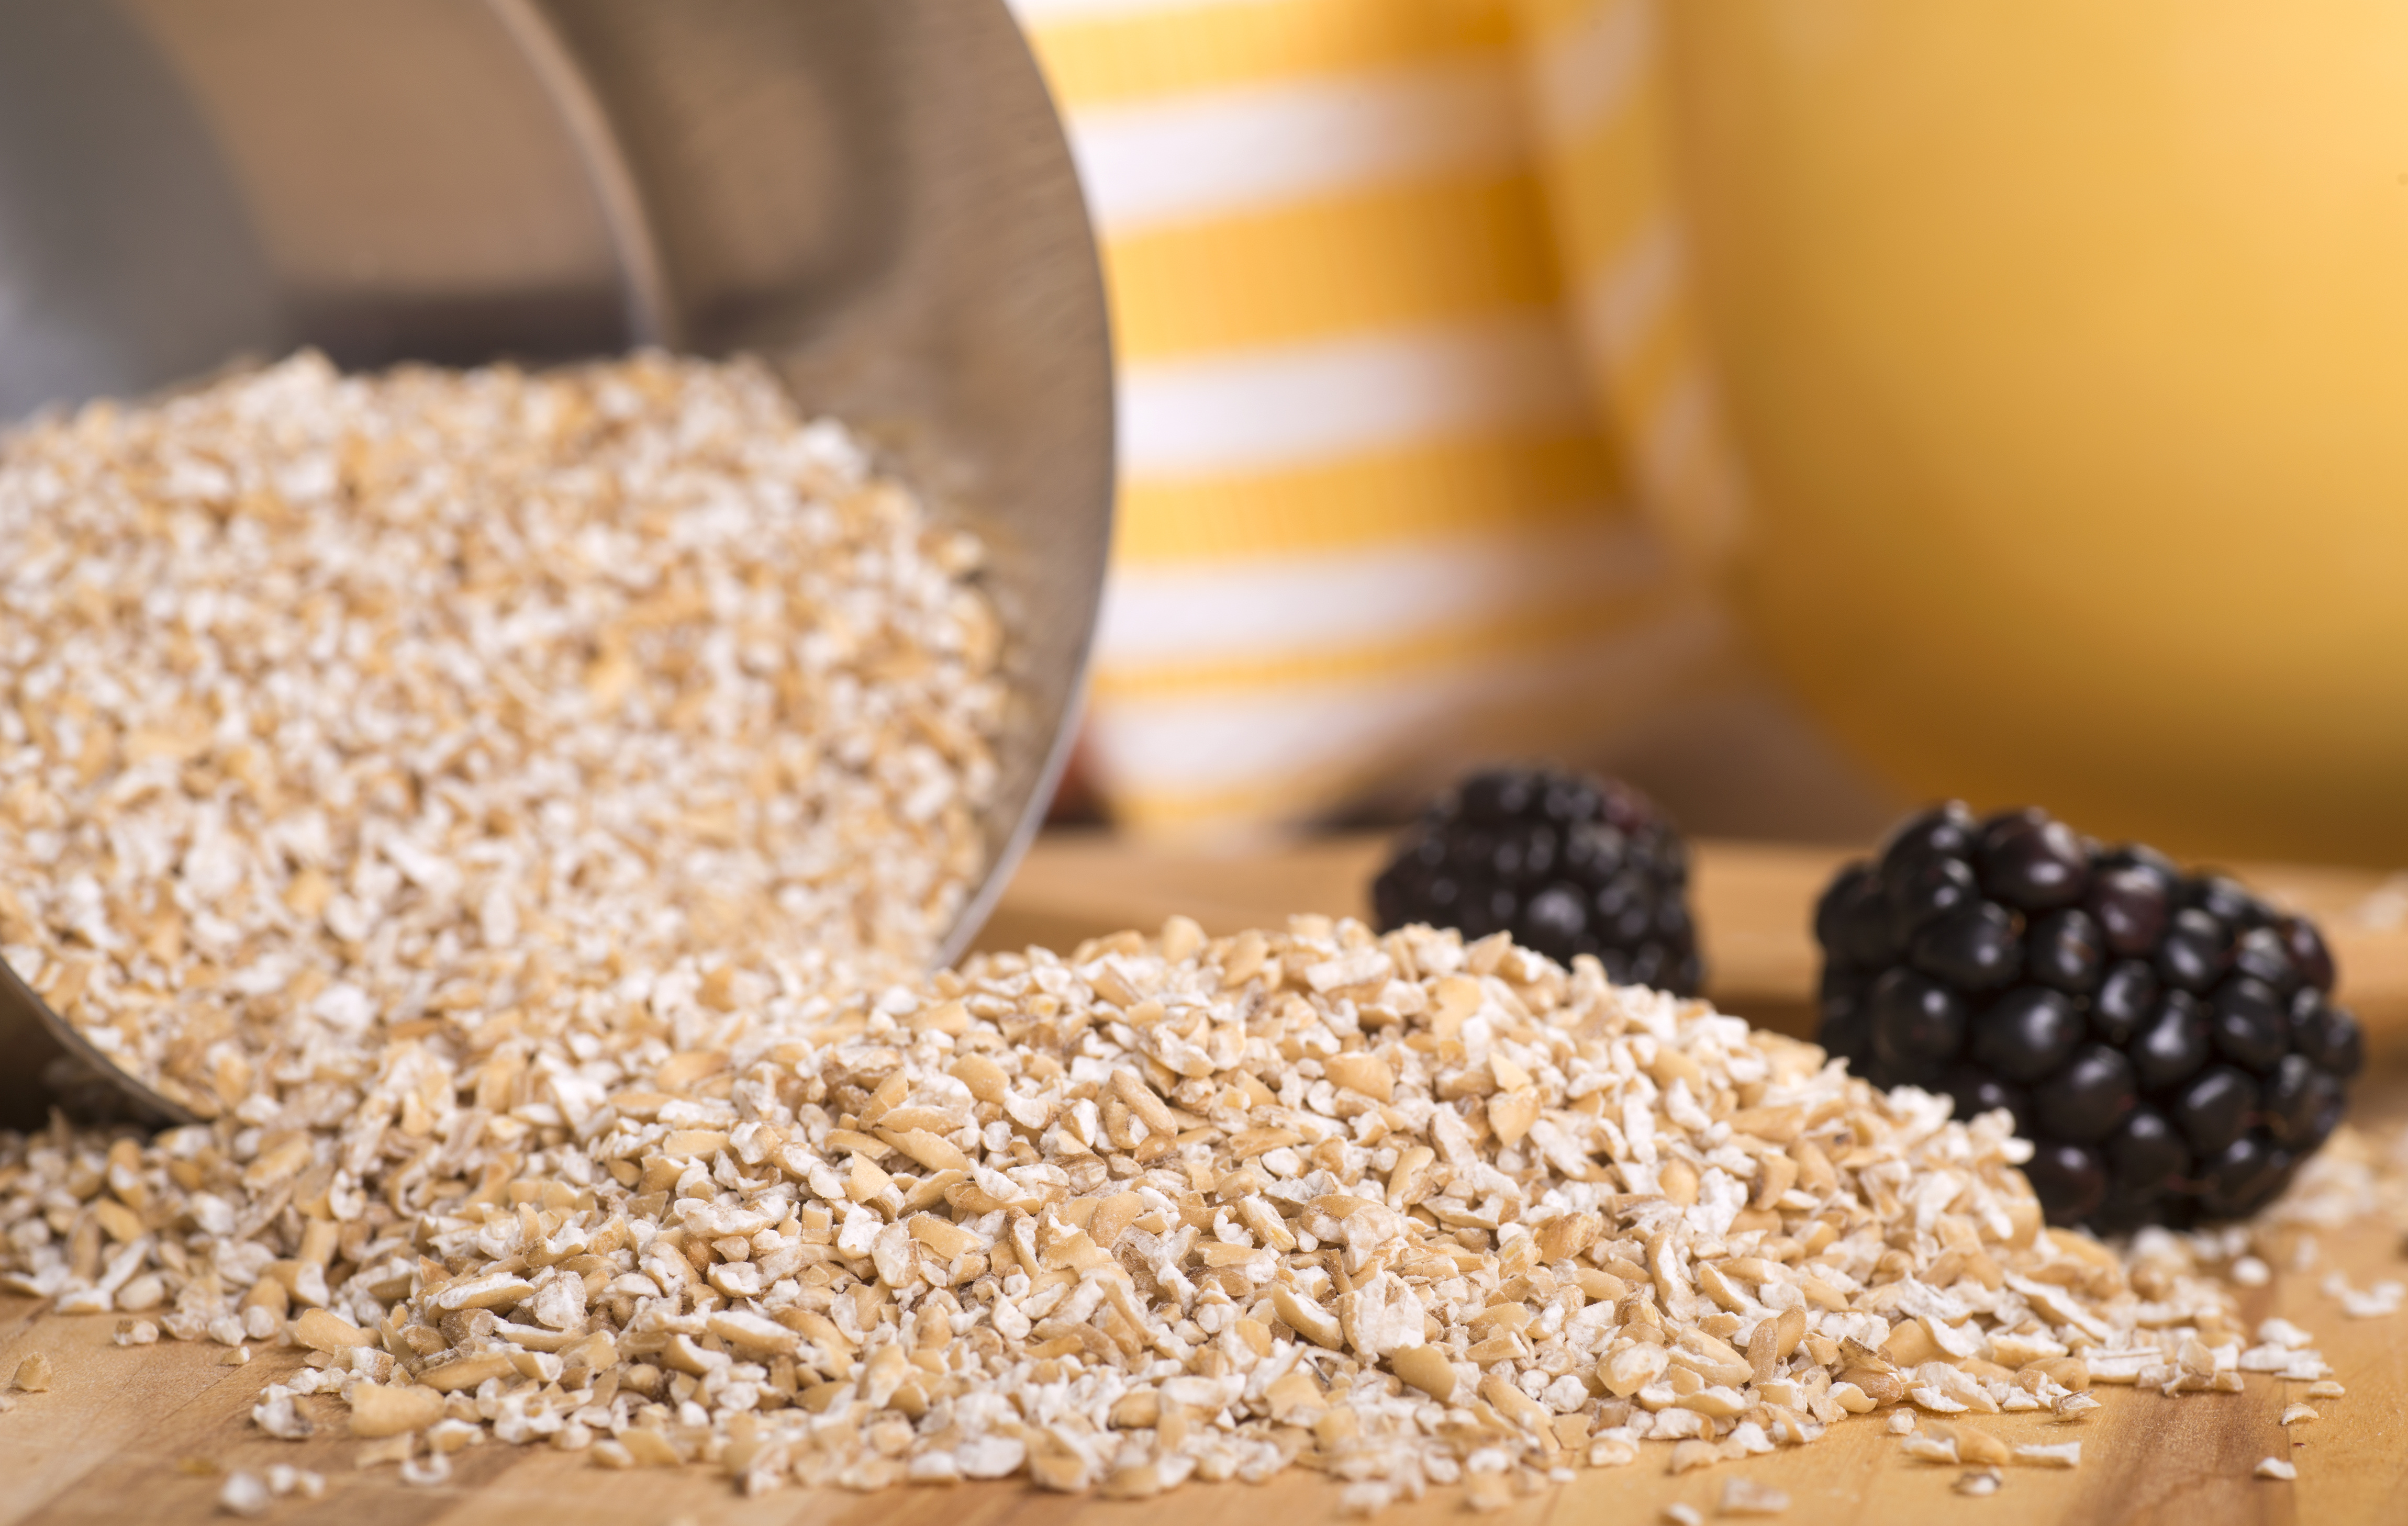 Being able to heat up a pouch of brown rice or steel cut oats in 60- to 90-seconds vs. the longer-simmering process, may make including them in your diet much easier.